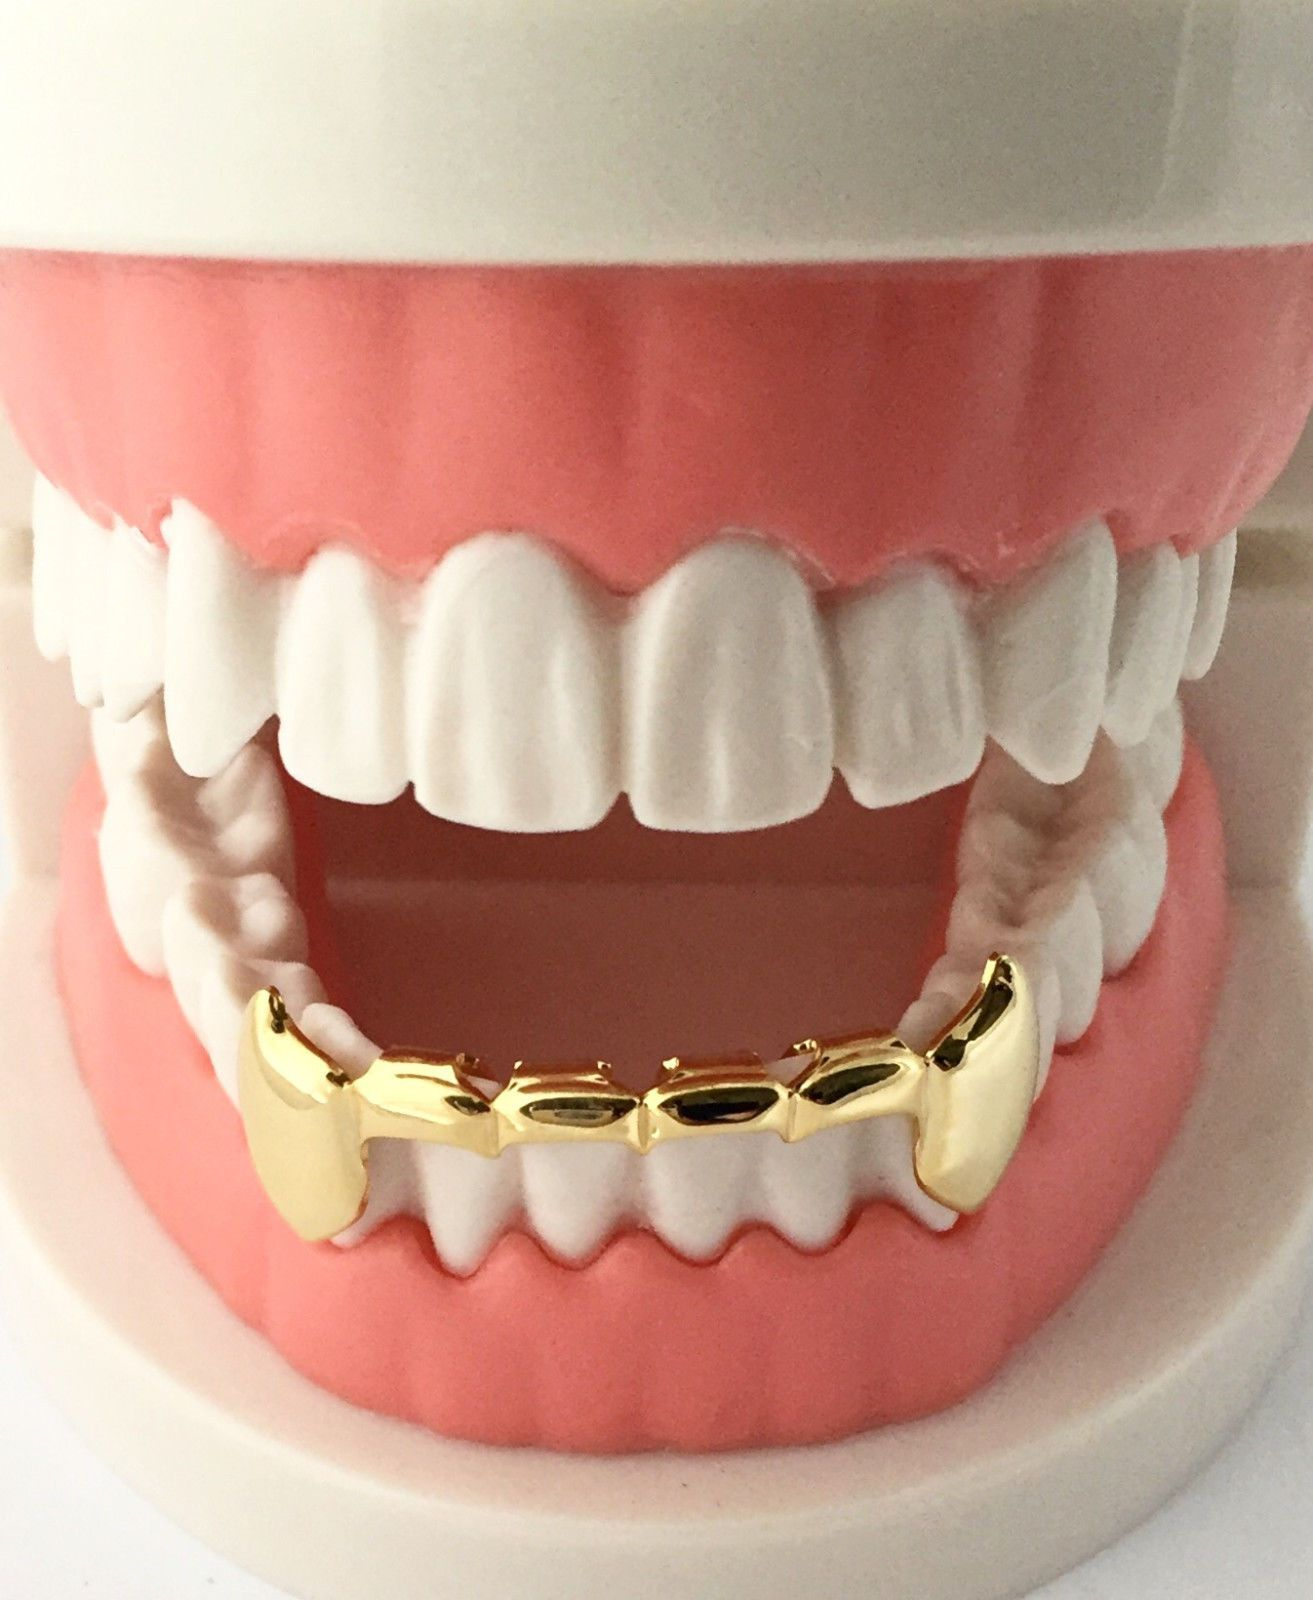 Details about custom 14k gold gp teeth mouth grillz bottom